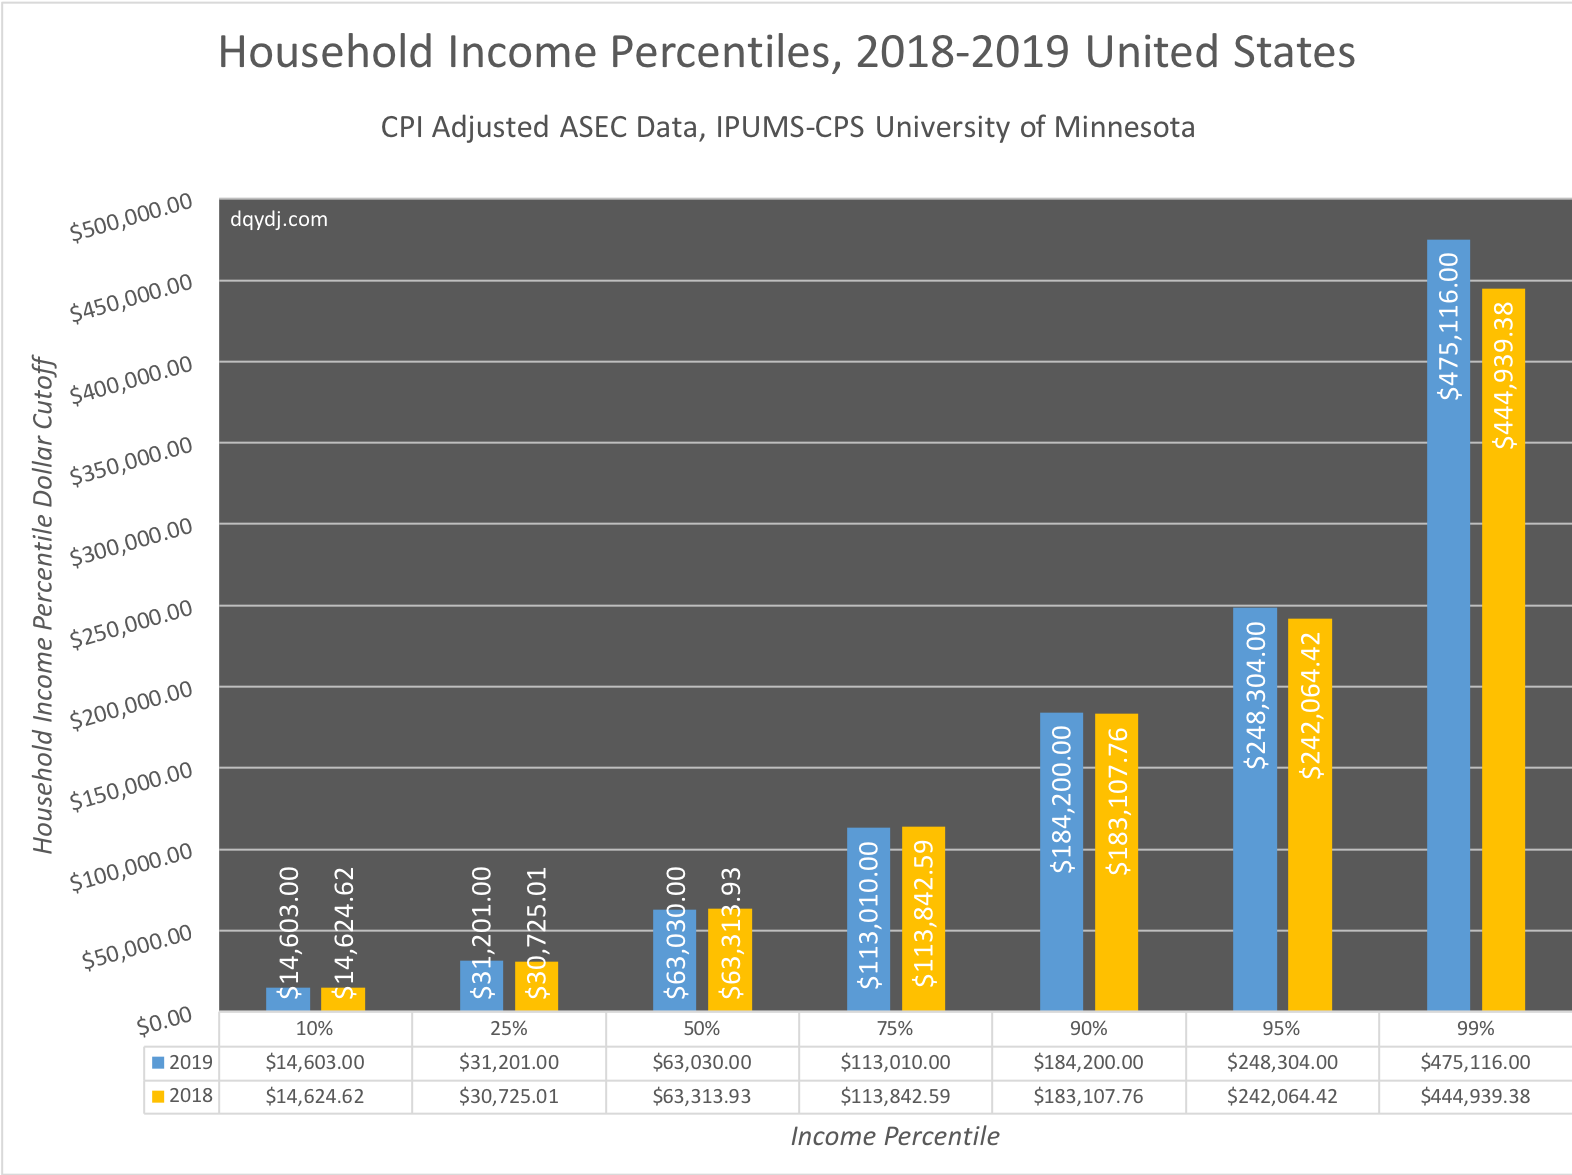 2019 Household Income vs. 2018 in the United States, selected percentiles